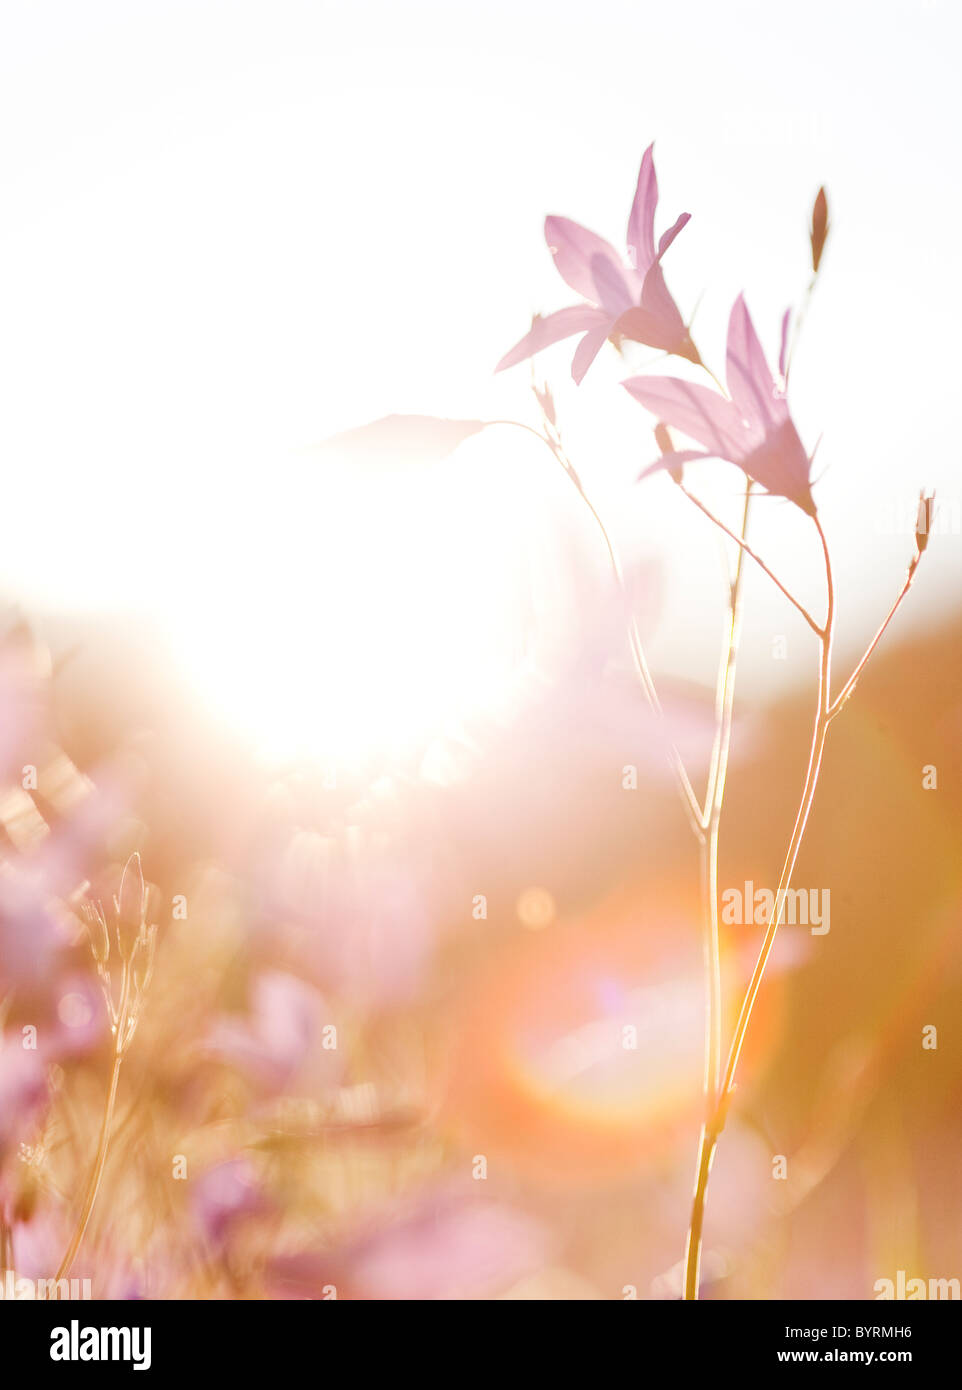 Fieldflower in backlighting,Dalarna,Sweden - Stock Image